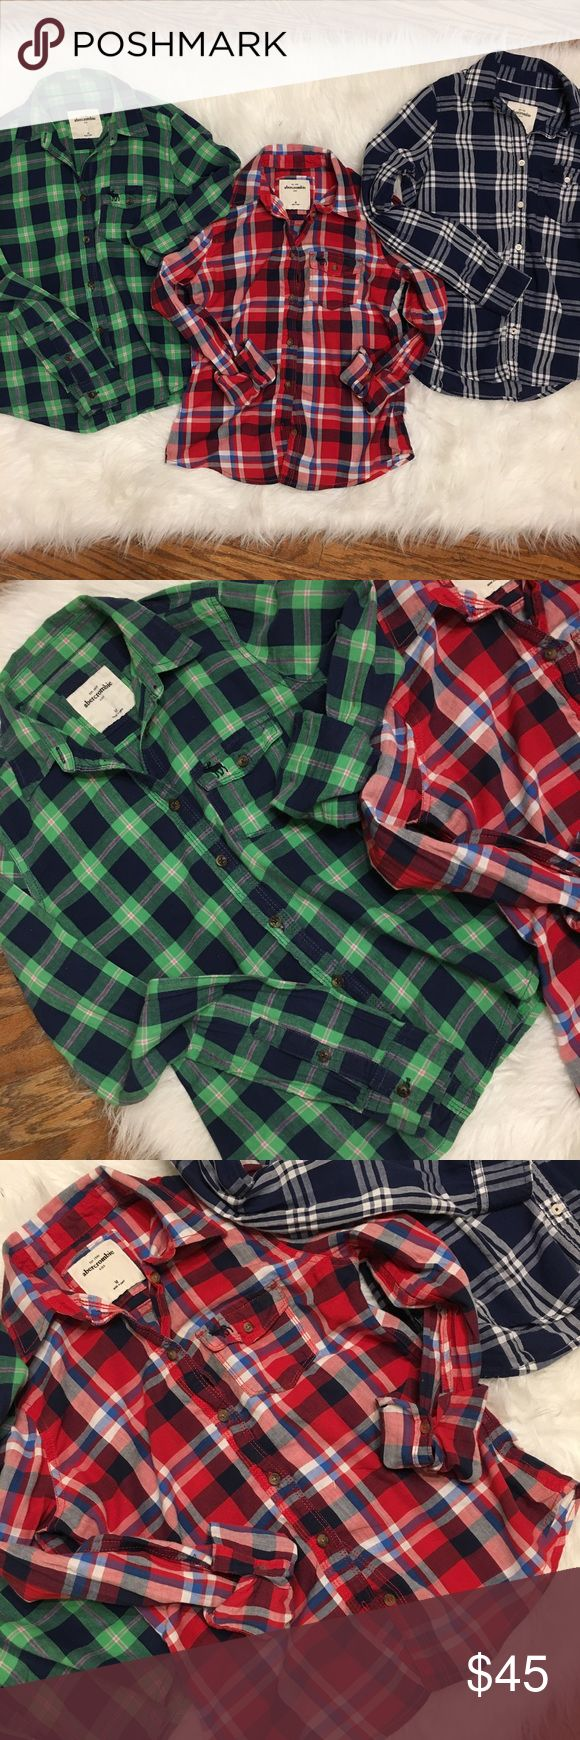 Abercrombie girls Button Down Shirt Bundle Girls plaid button down tops in excellent condition! All size medium. abercrombie kids Shirts & Tops Button Down Shirts